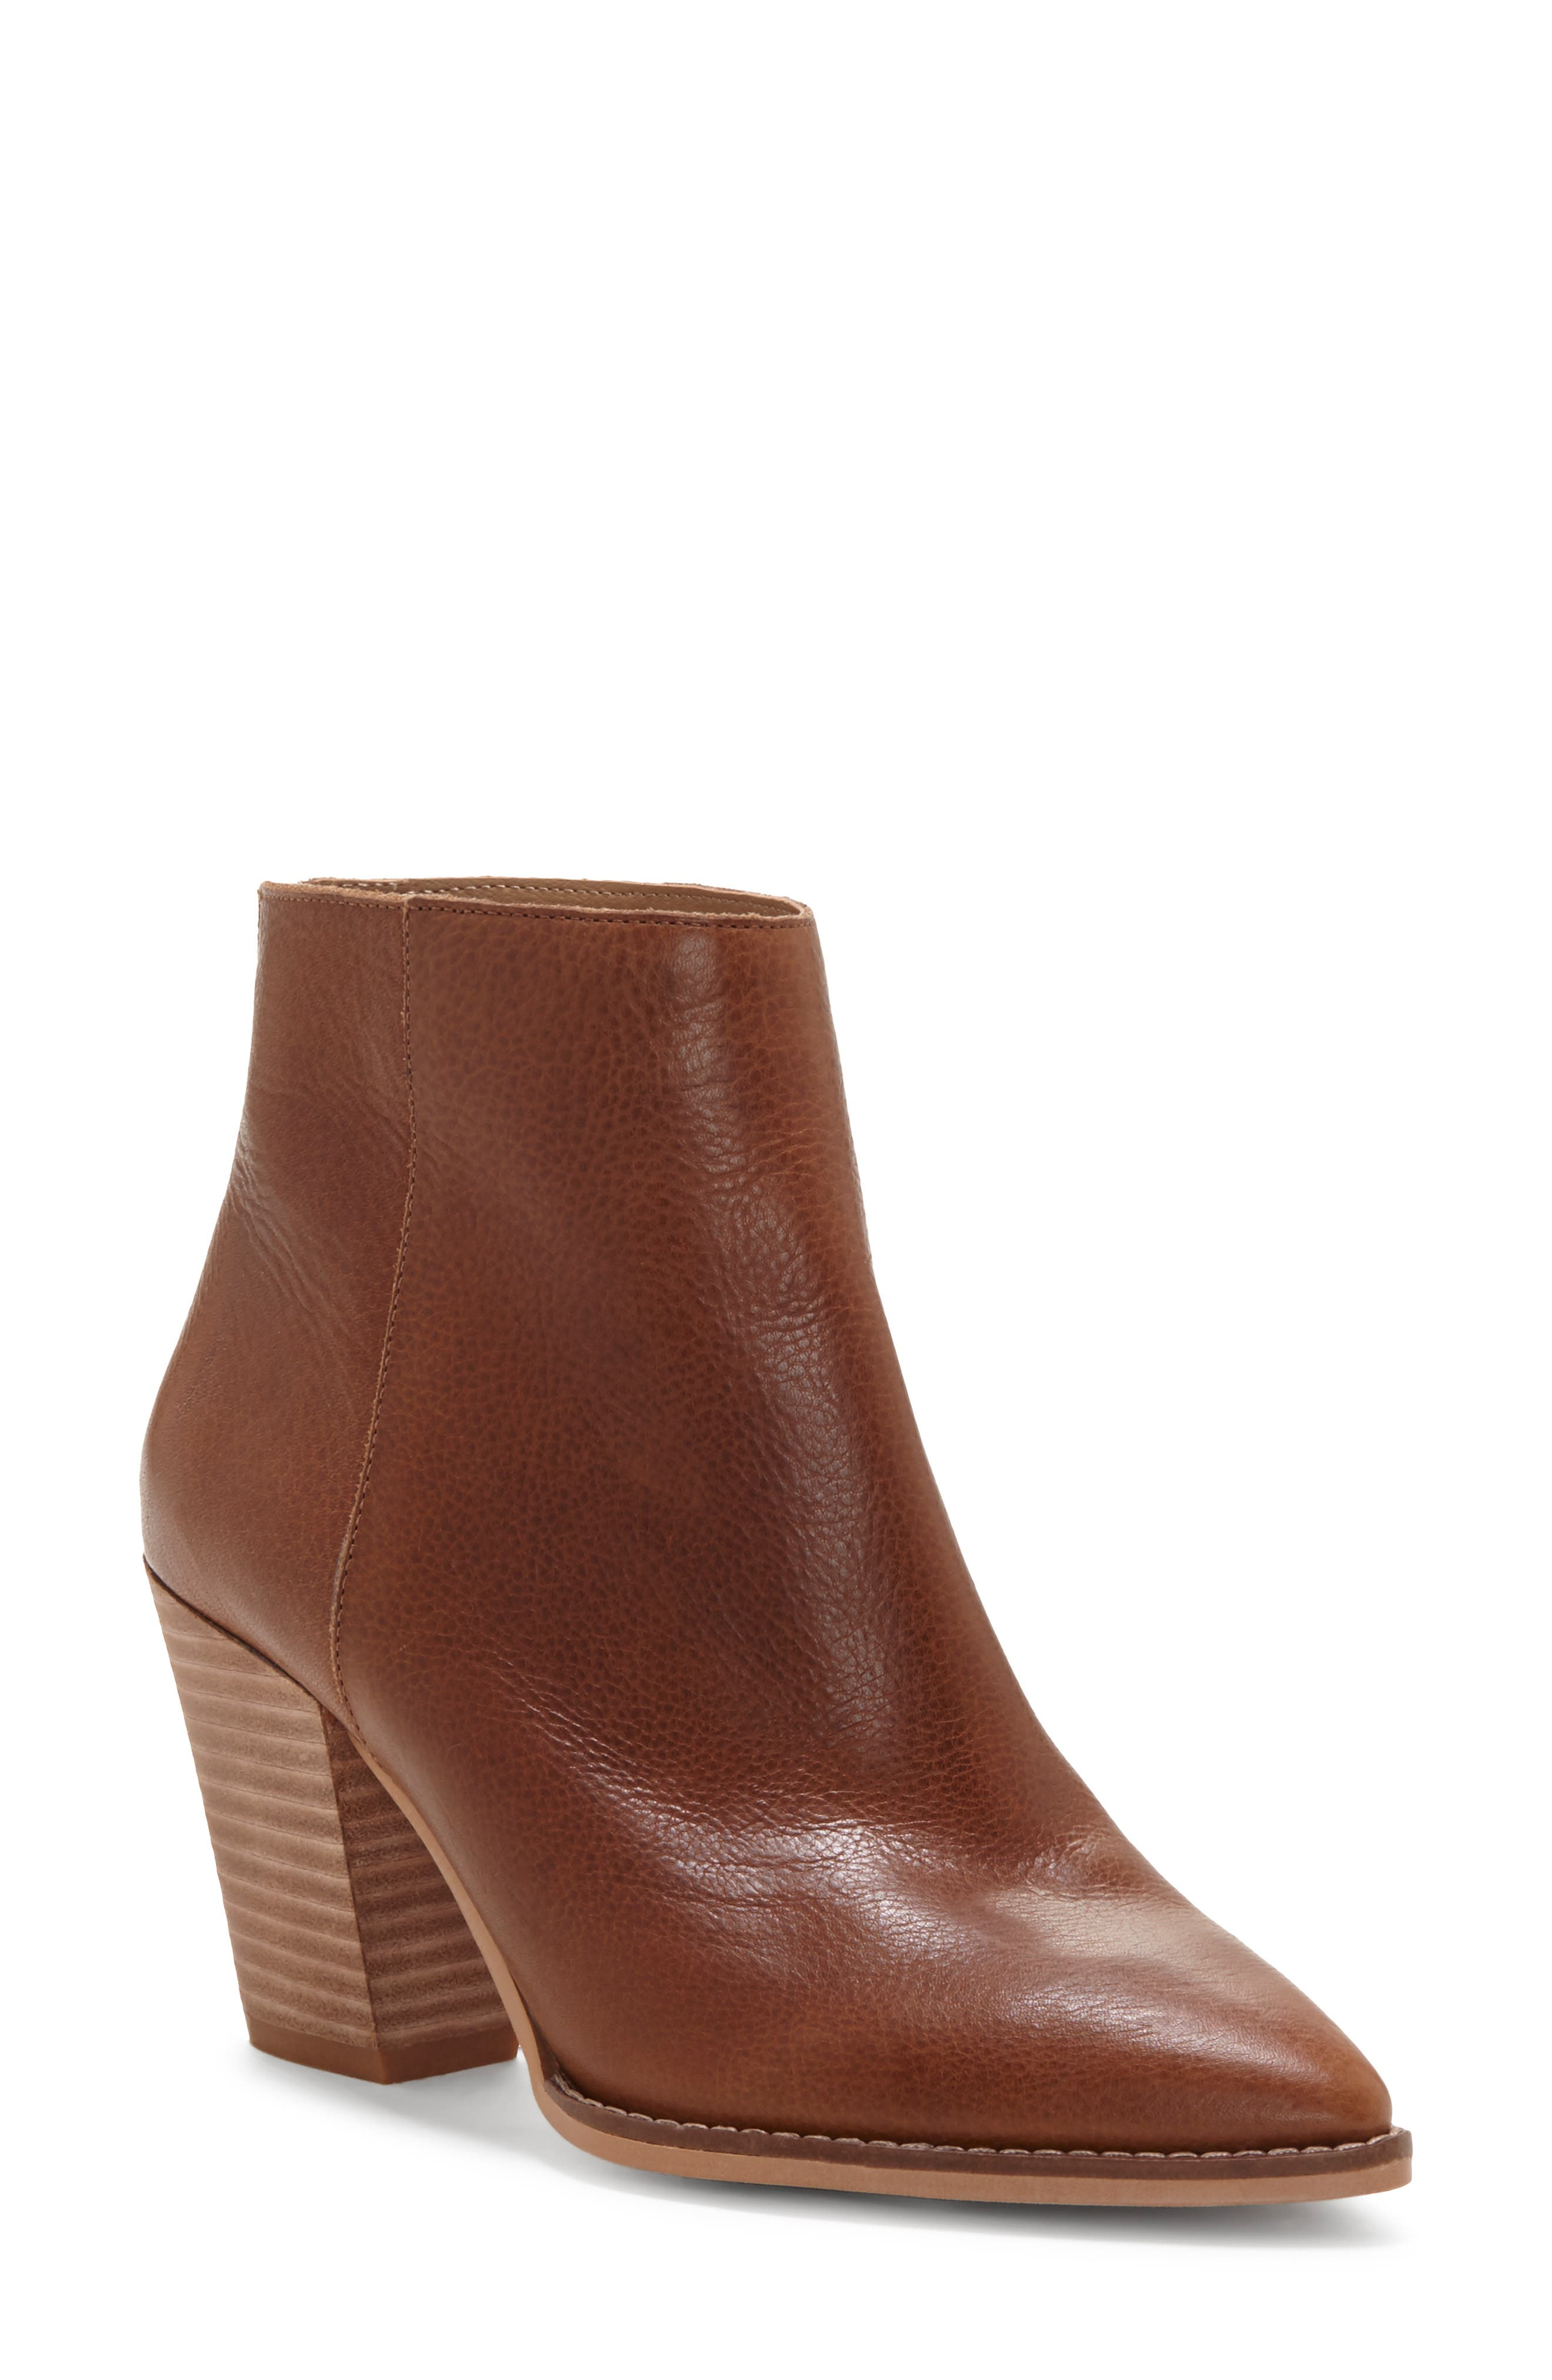 LUCKY BRAND, Adalan Bootie, Main thumbnail 1, color, MACAROON LEATHER